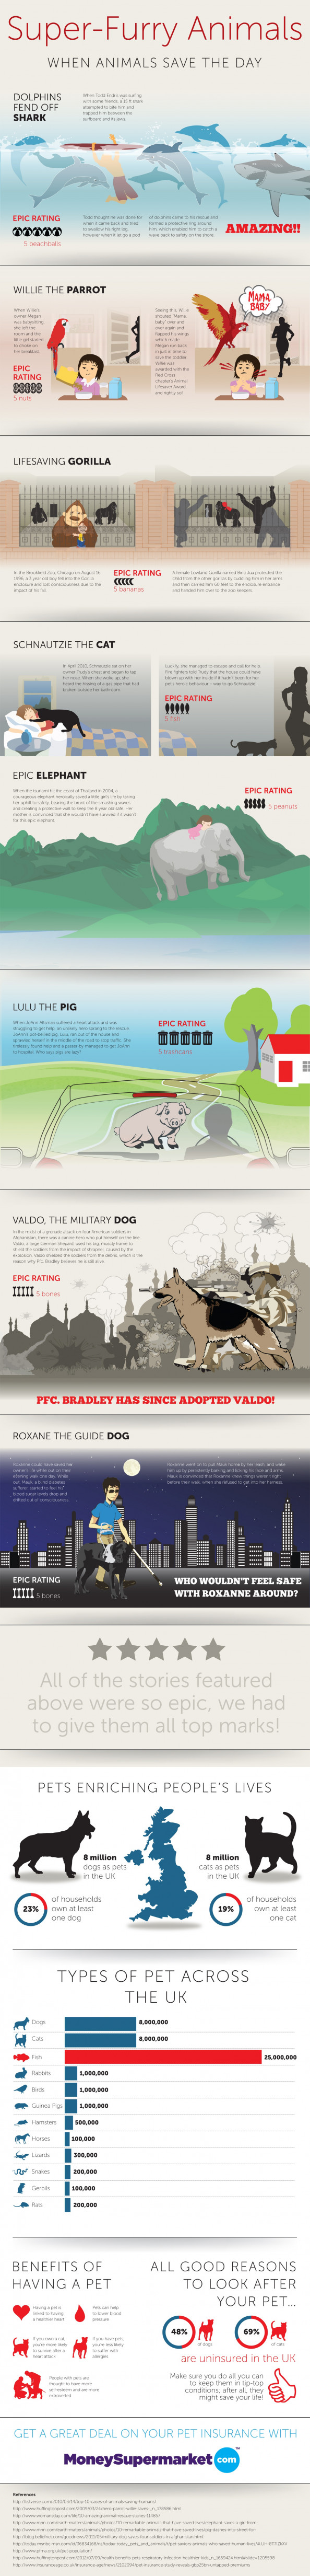 Super Furry Animals Infographic